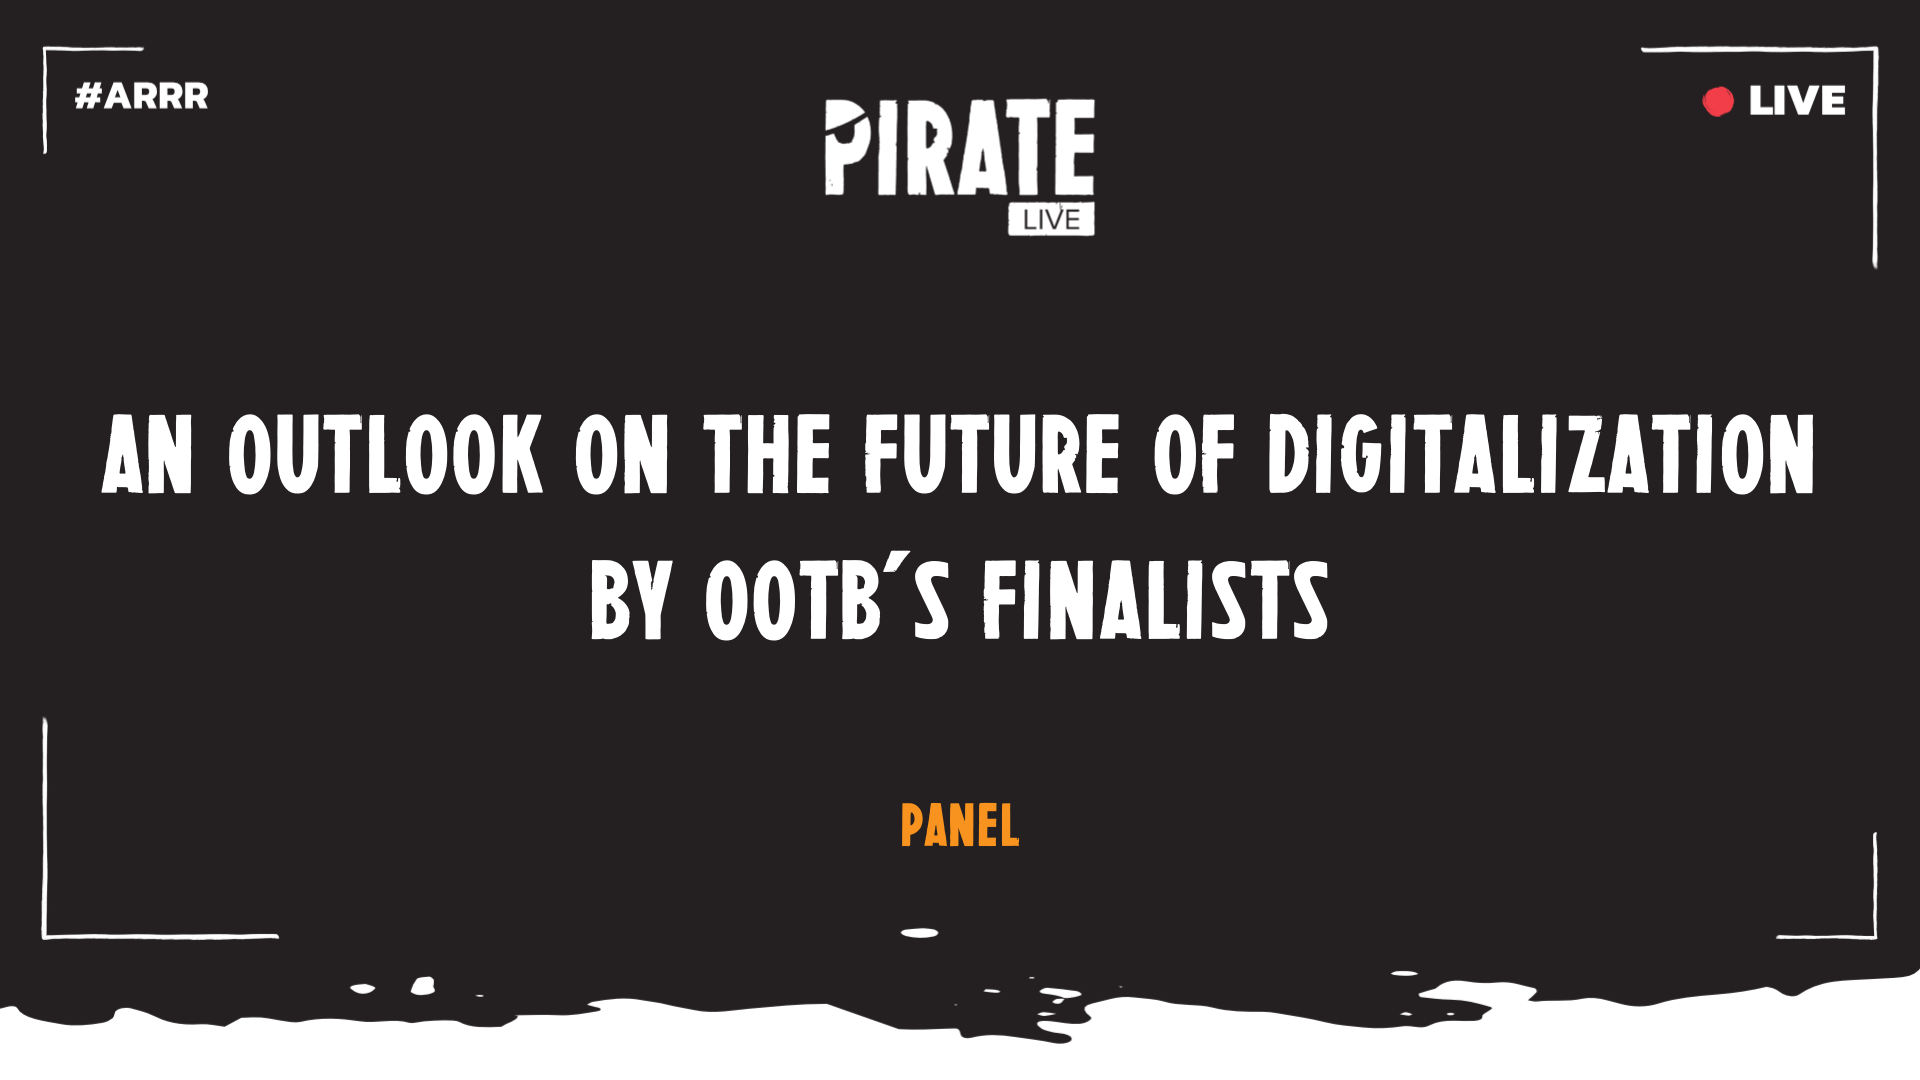 An outlook on the future of digitalization by OOTB's finalists